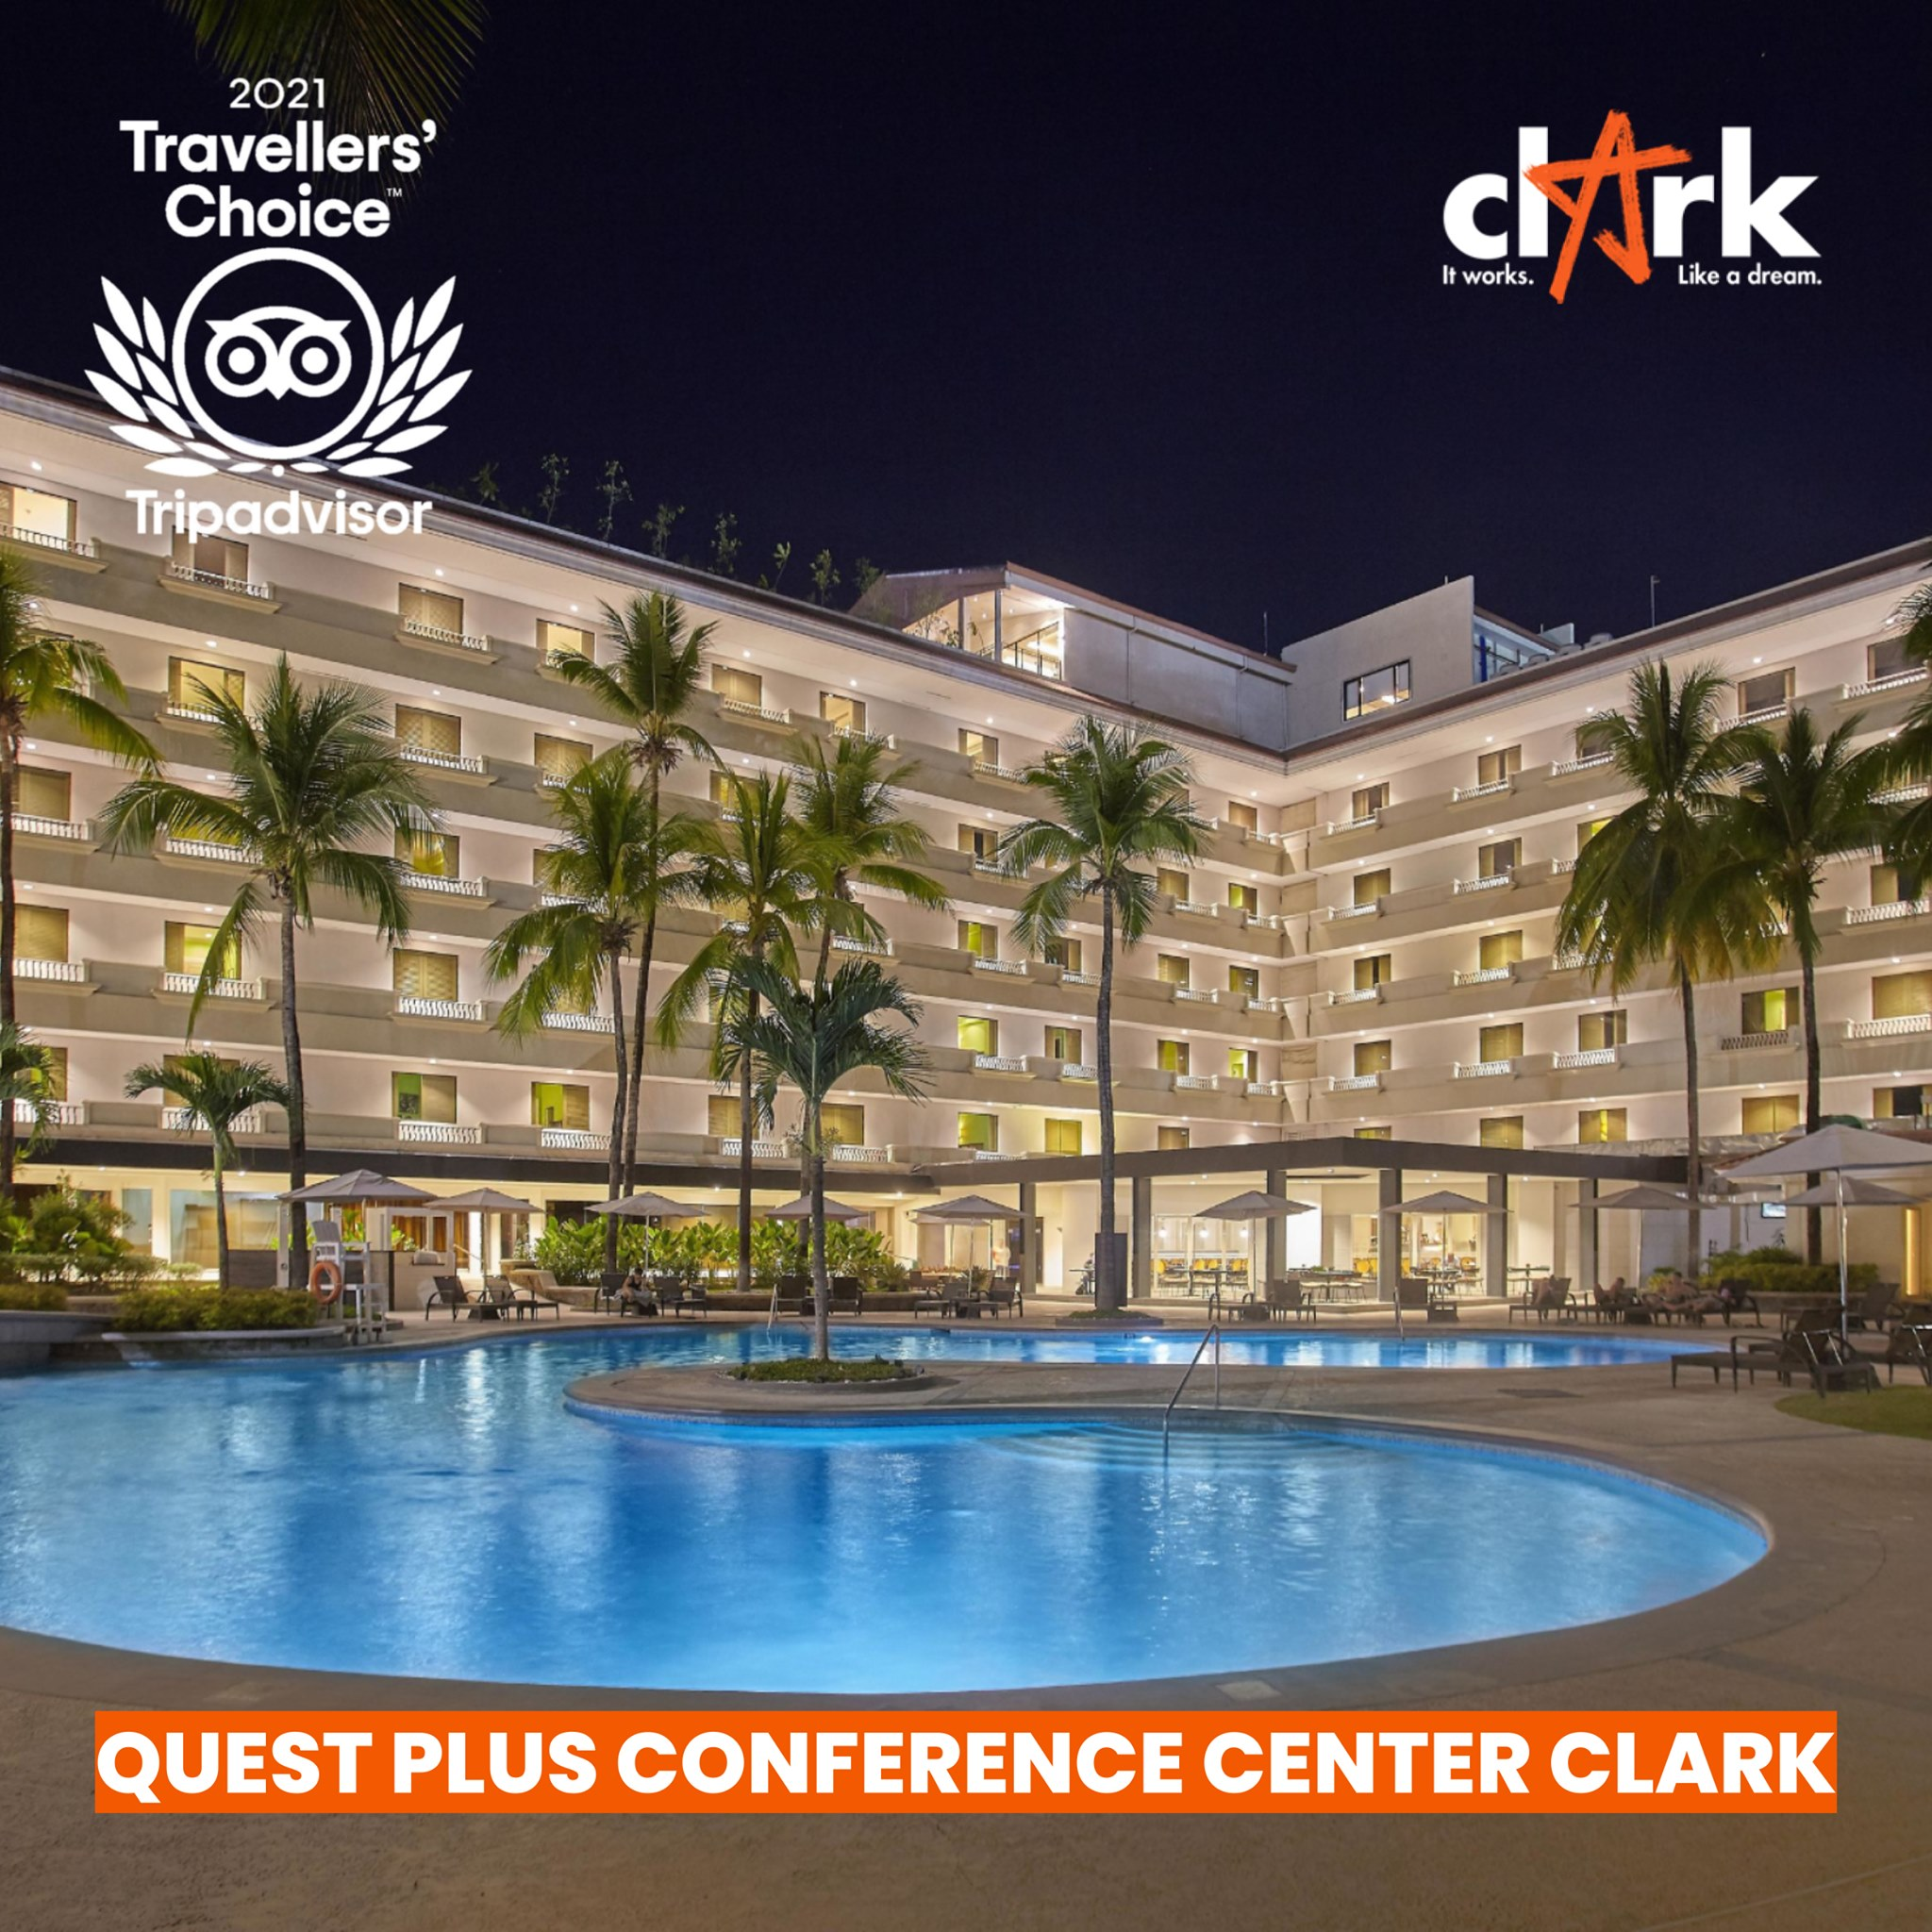 Clark hotels recognized for excellent services to guests, travelers